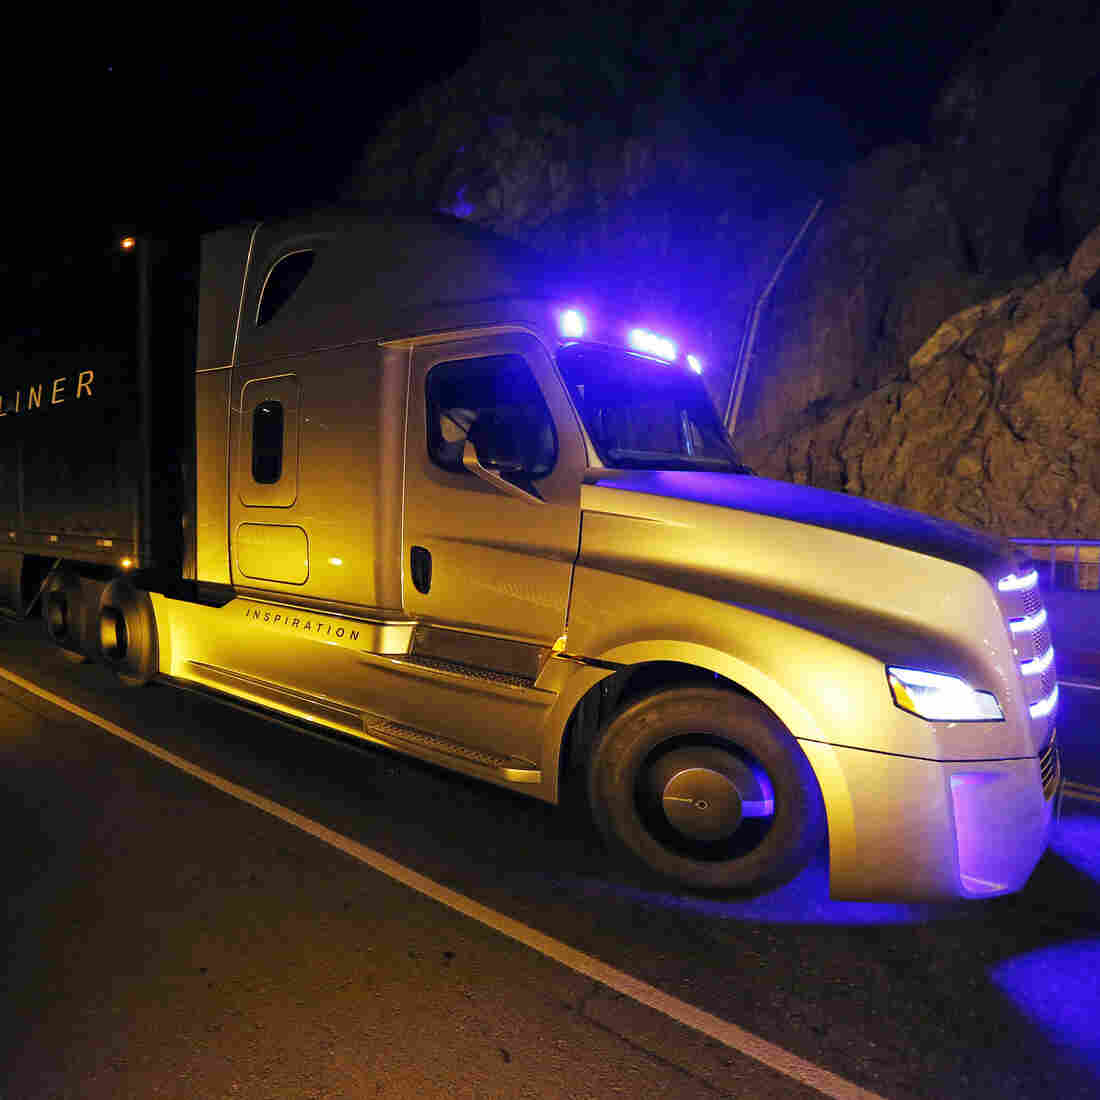 The Daimler Freightliner Inspiration, a self-driving long-haul truck, is seen during an event at the Hoover Dam, May 5, 2015, near Boulder City, Nev.